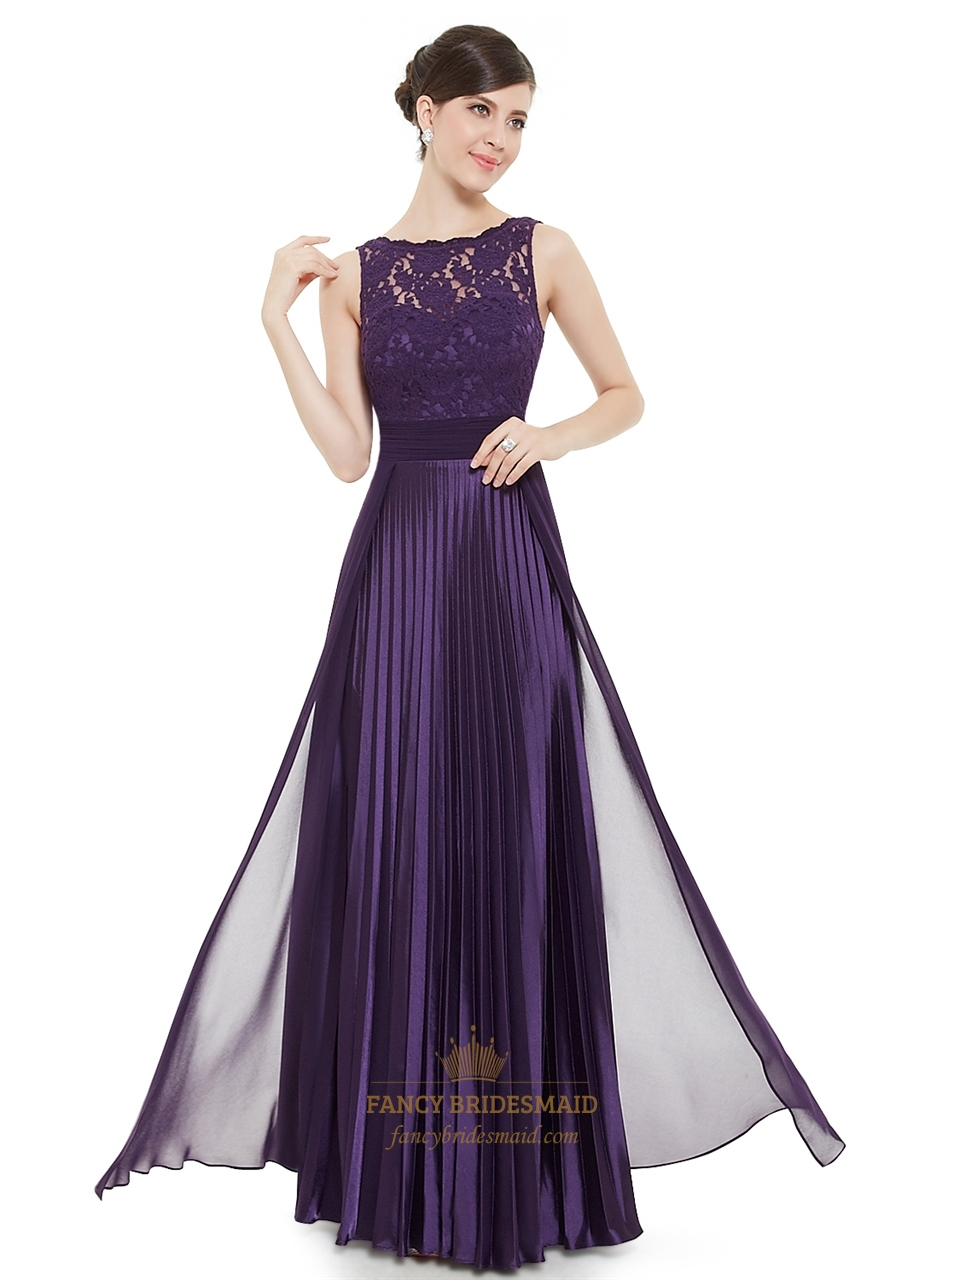 Elegant Purple Lace Illusion Neckline Chiffon Long Bridesmaid Dress